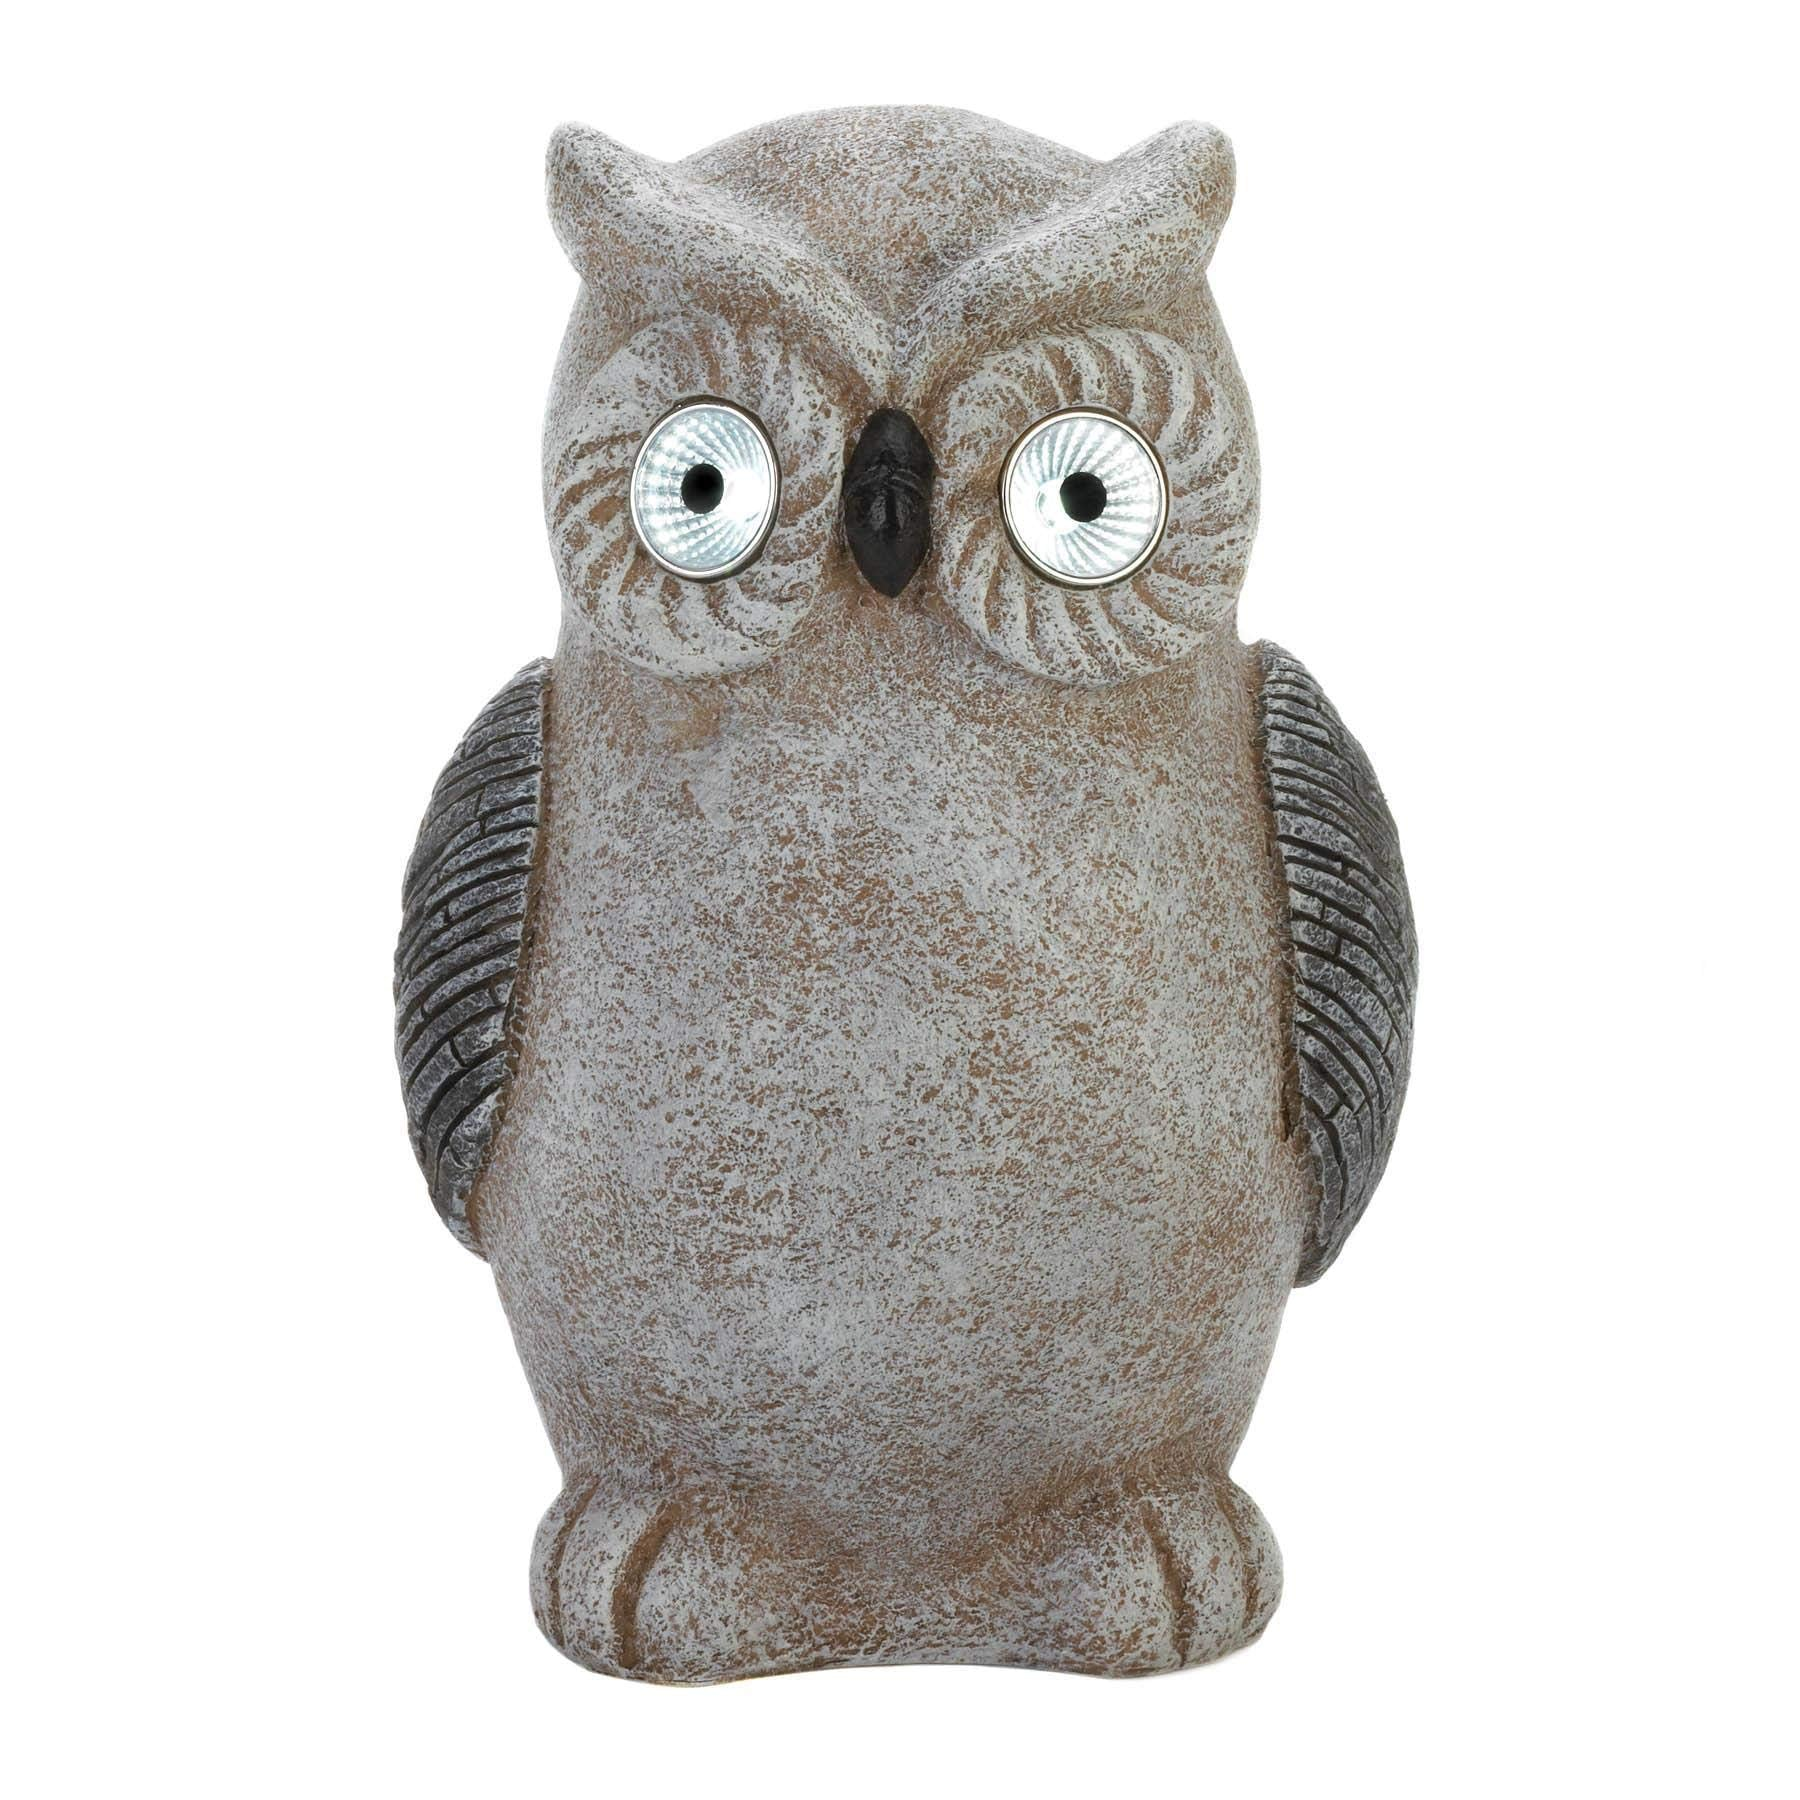 Home4U™ Solar Owl Garden Lawn Statue Ornament Yard Sculpture Pest Control